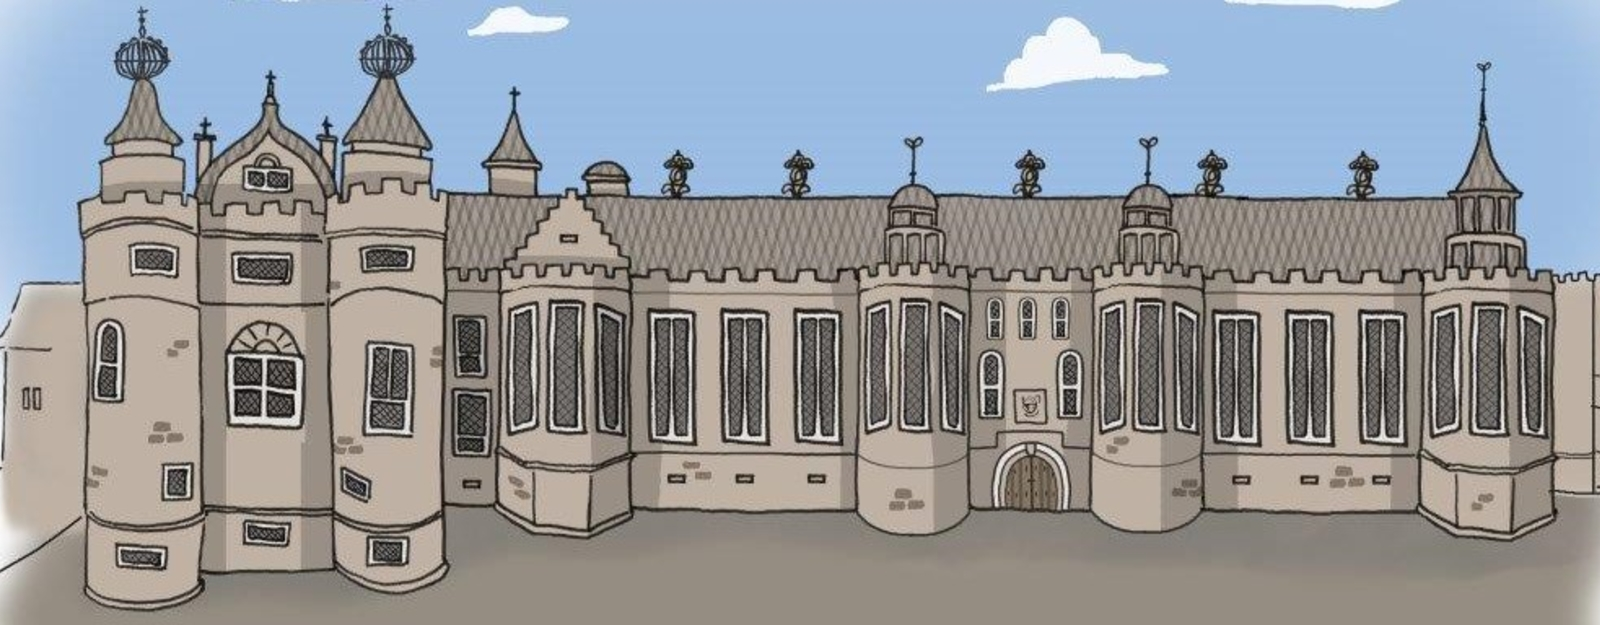 Illustration of 16th century facade of Palace of Holyroodhouse